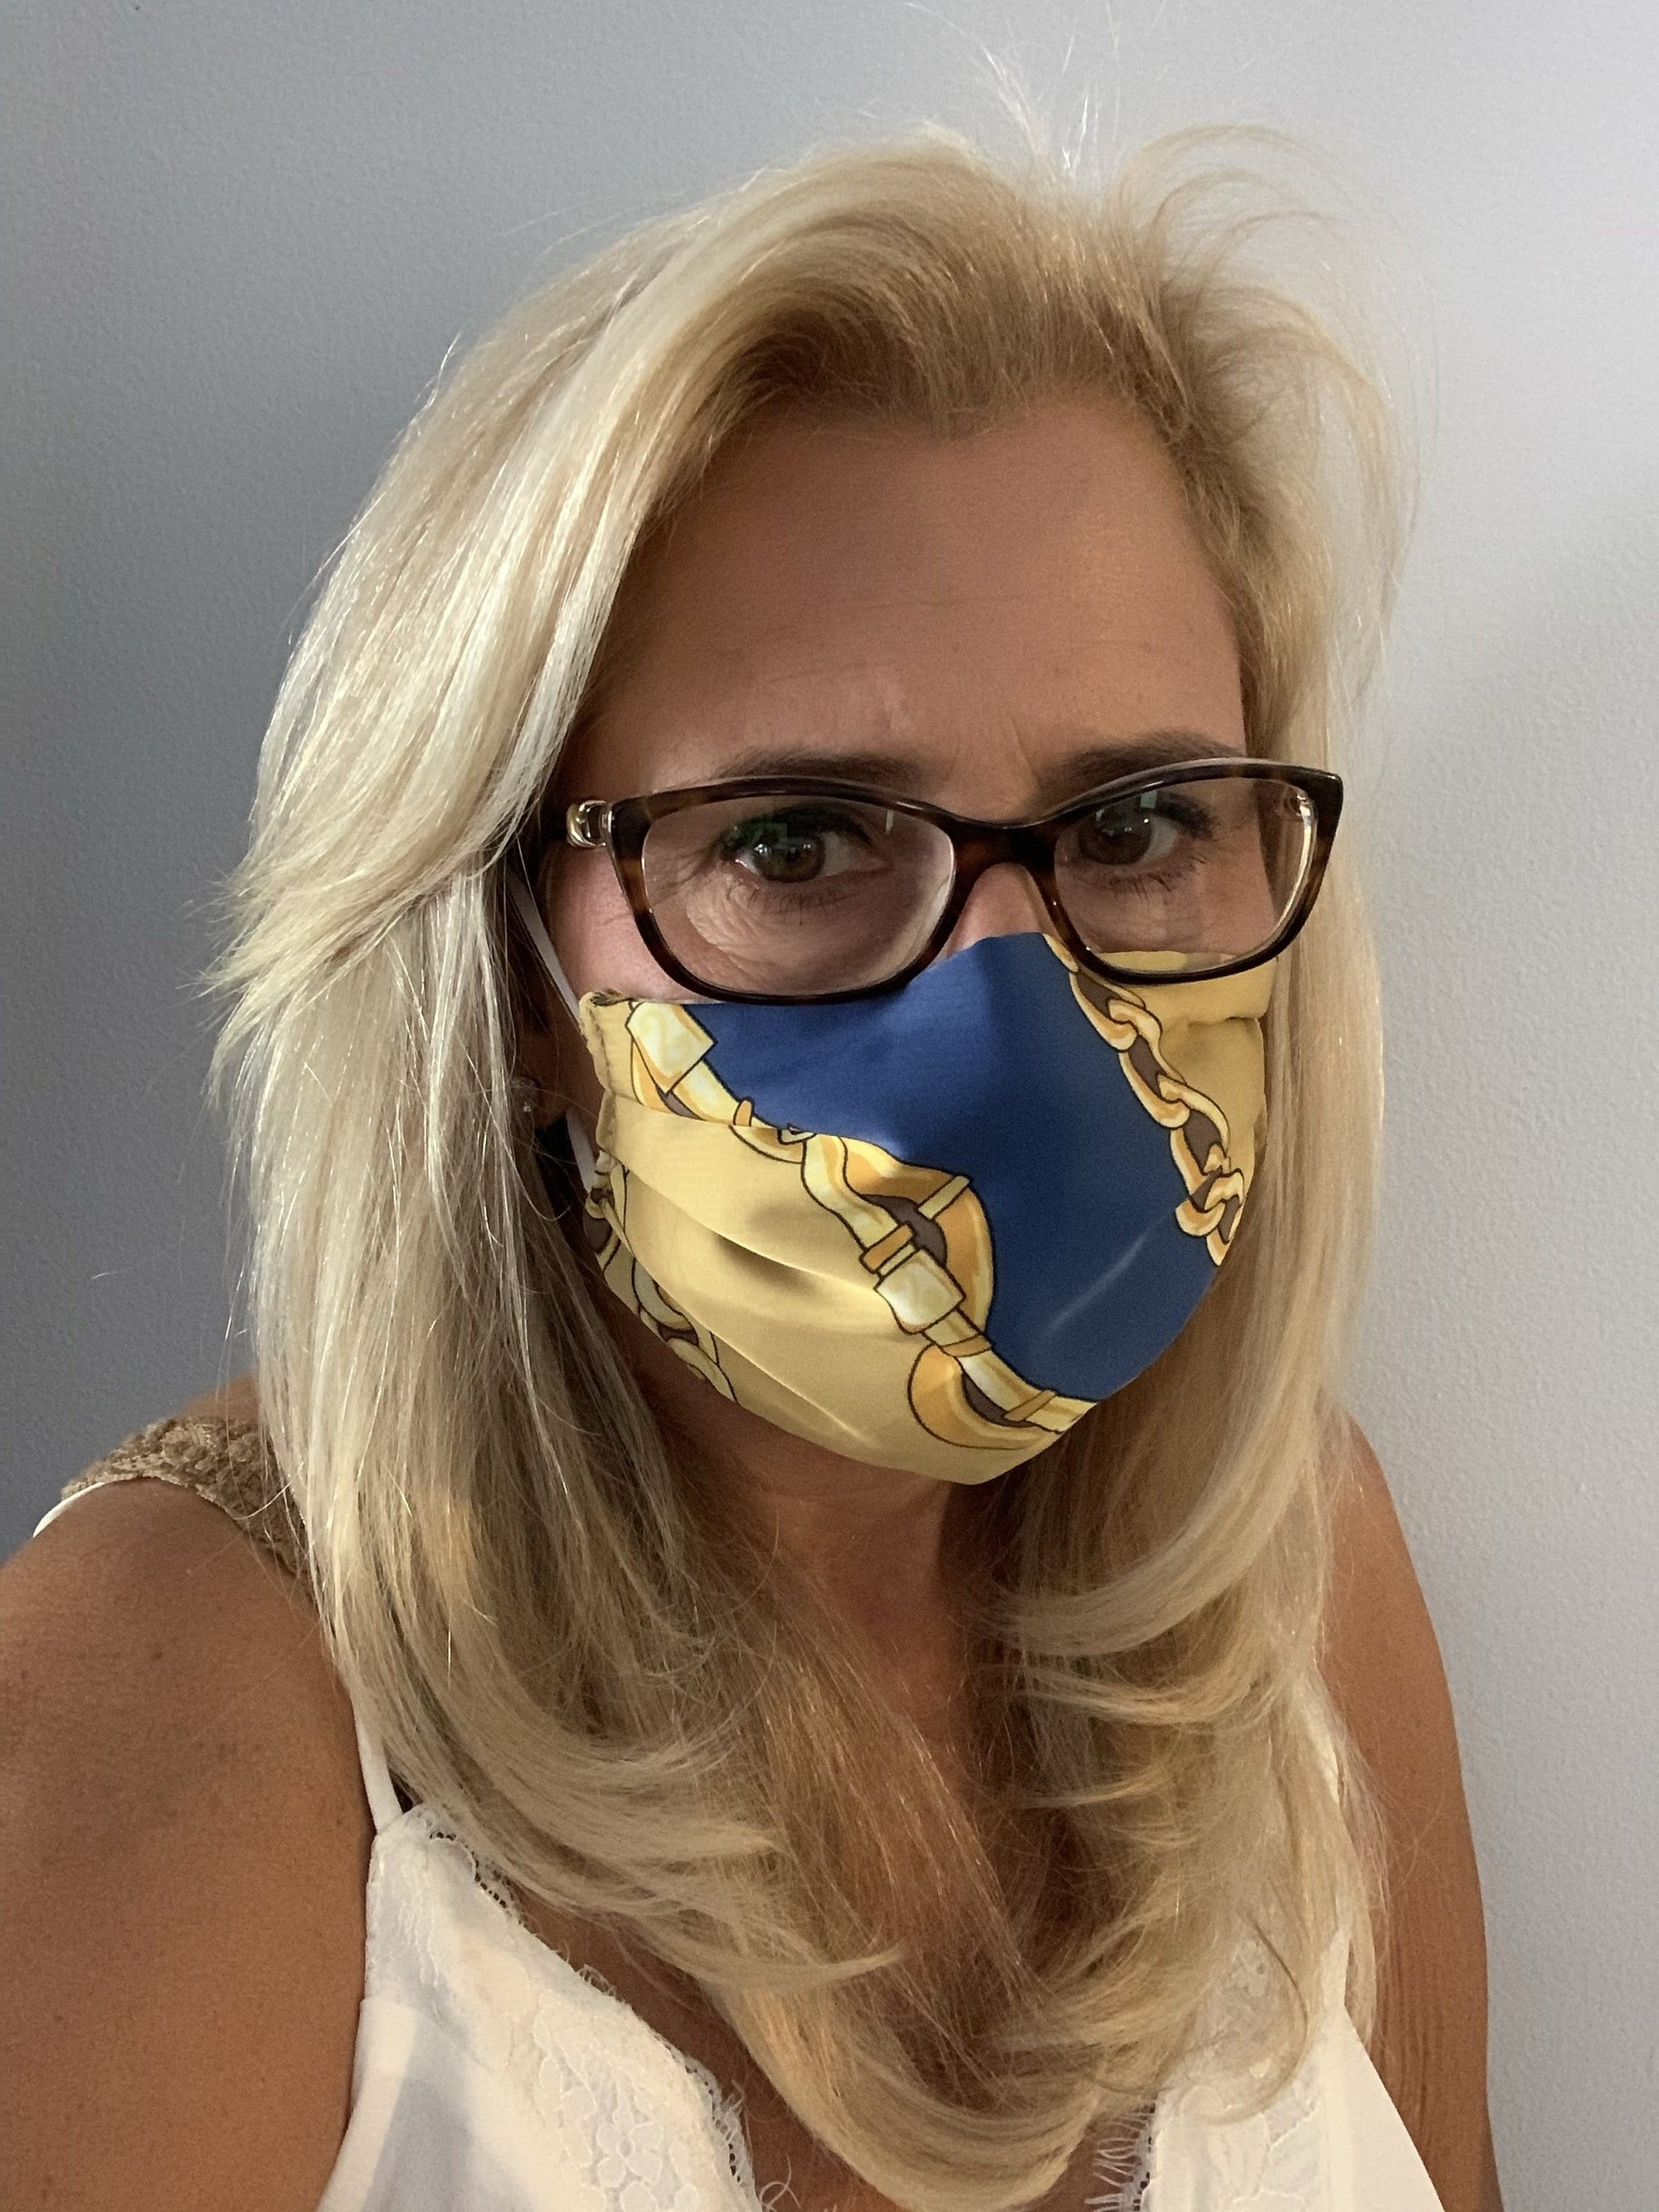 Stacy Bradley Design Face Mask Equestrian Blue equestrian team apparel online tack store mobile tack store custom farm apparel custom show stable clothing equestrian lifestyle horse show clothing riding clothes horses equestrian tack store